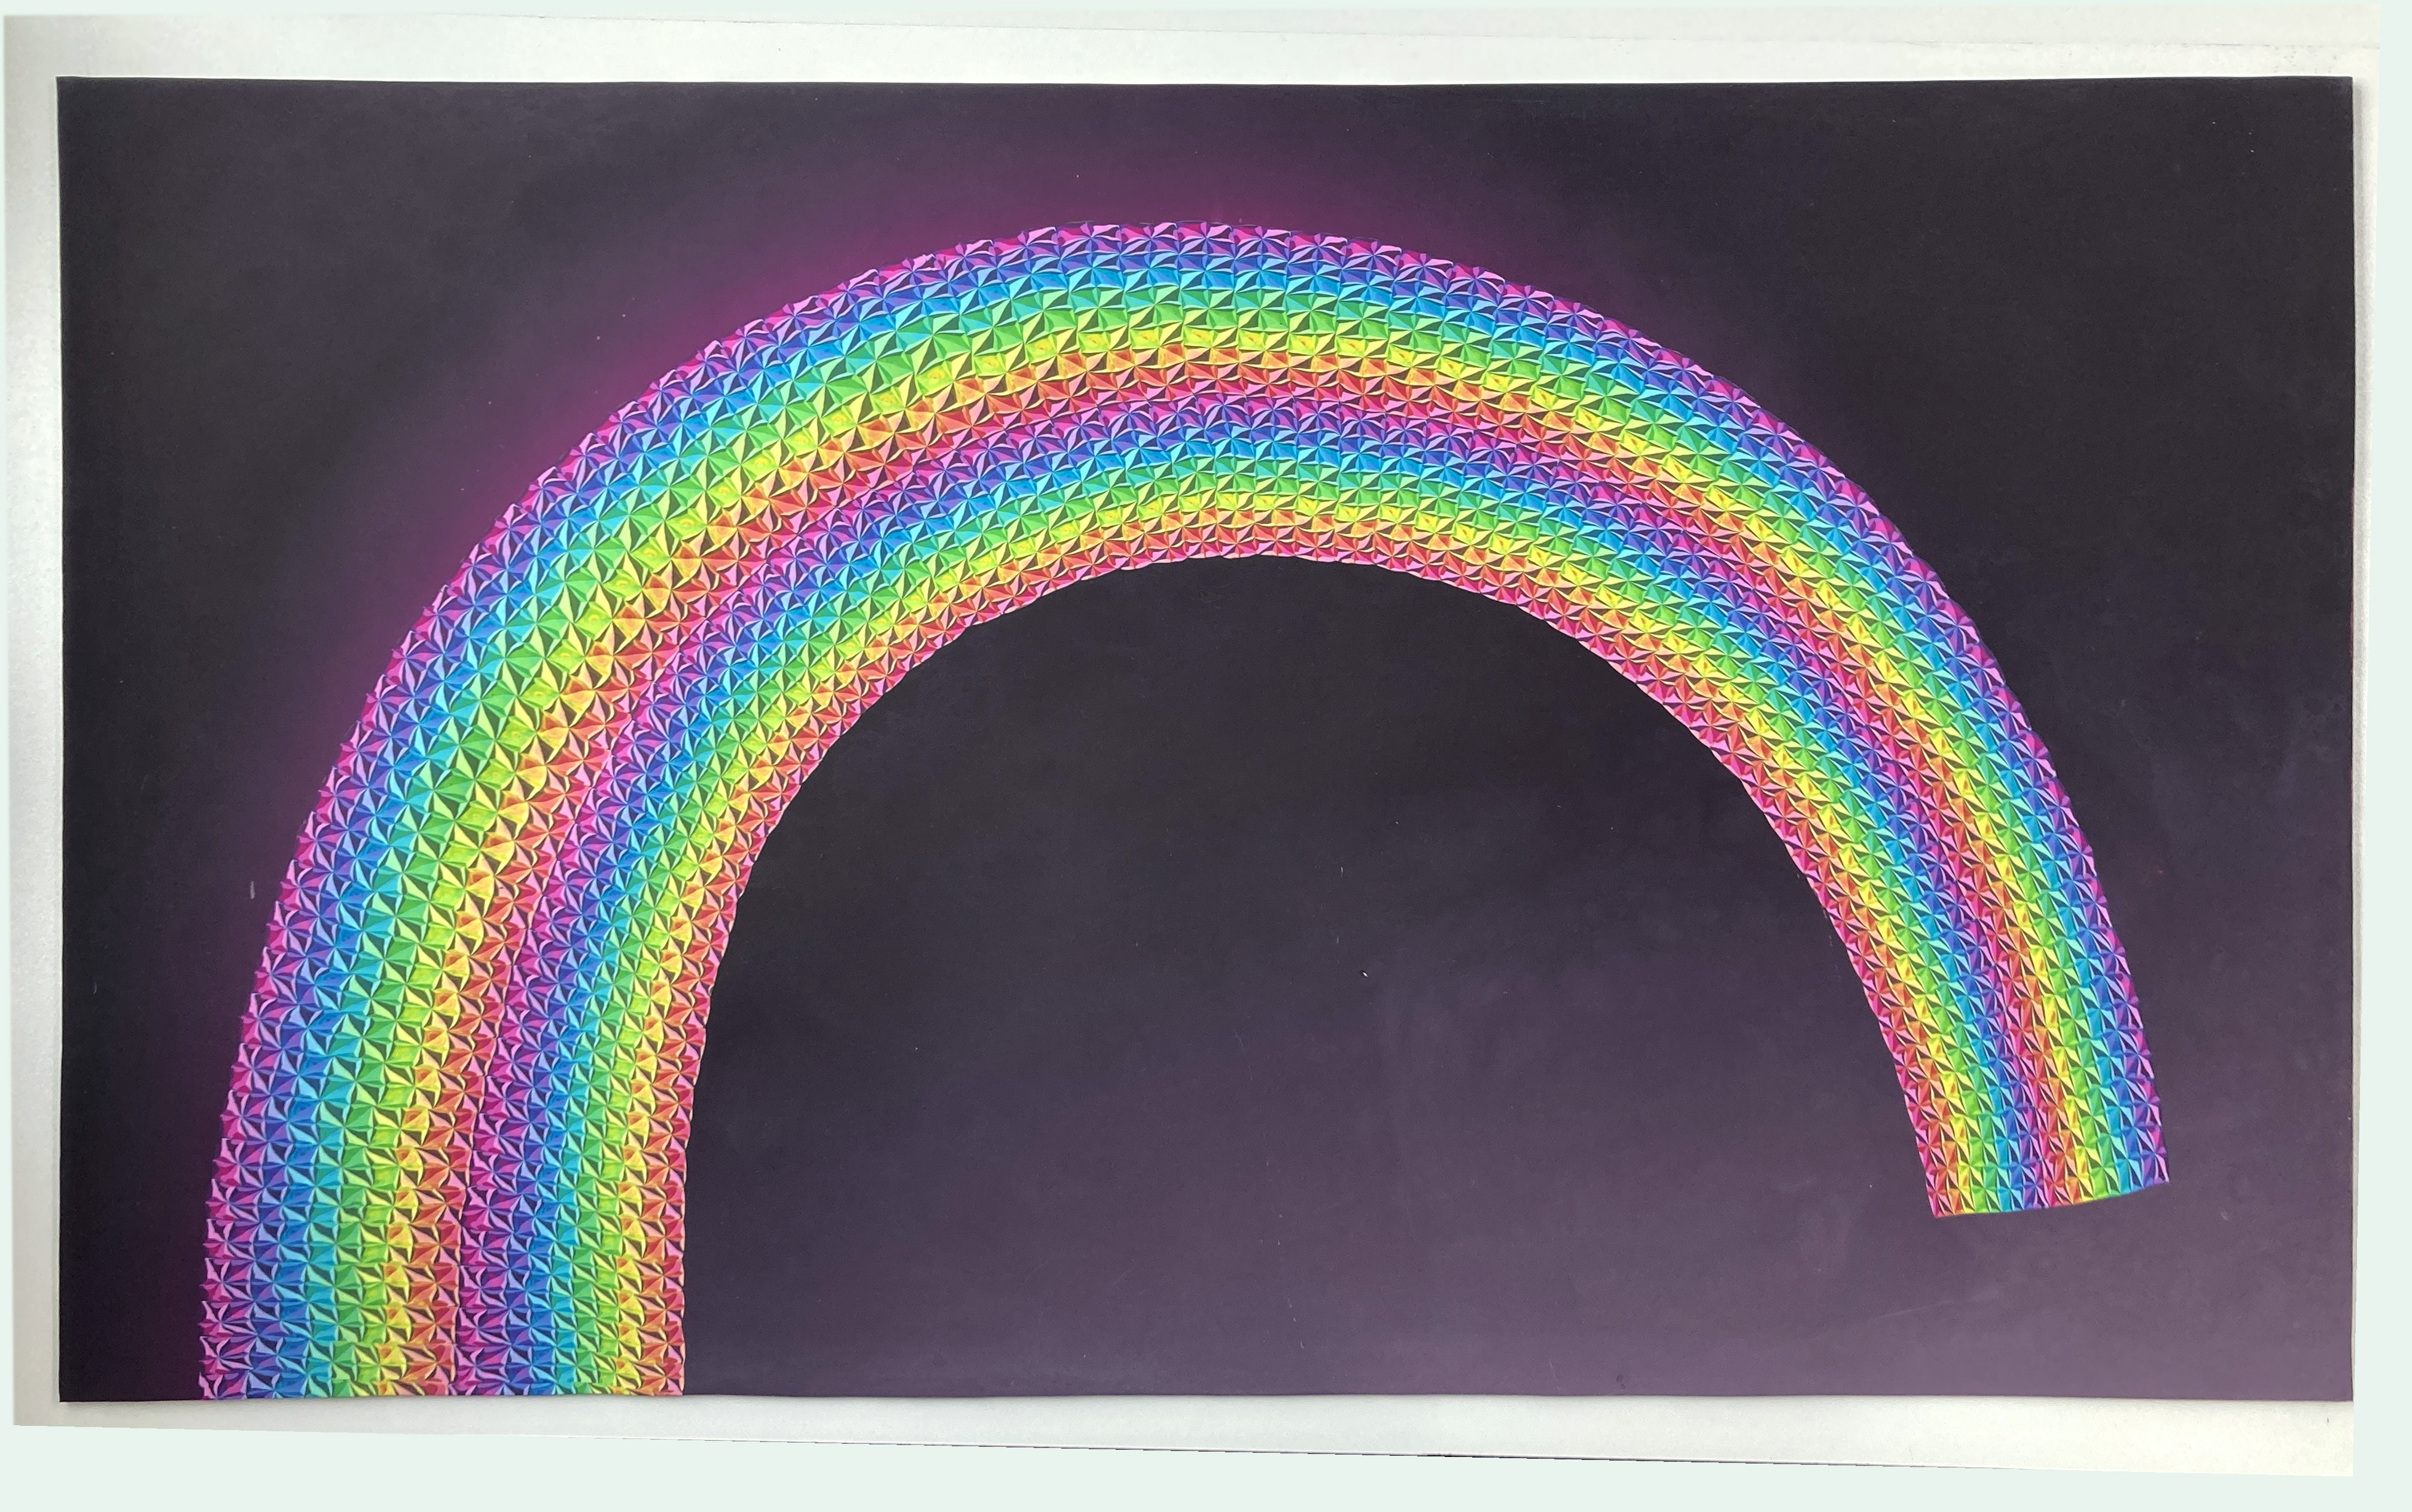 Philip Wiegard - RAINBOW